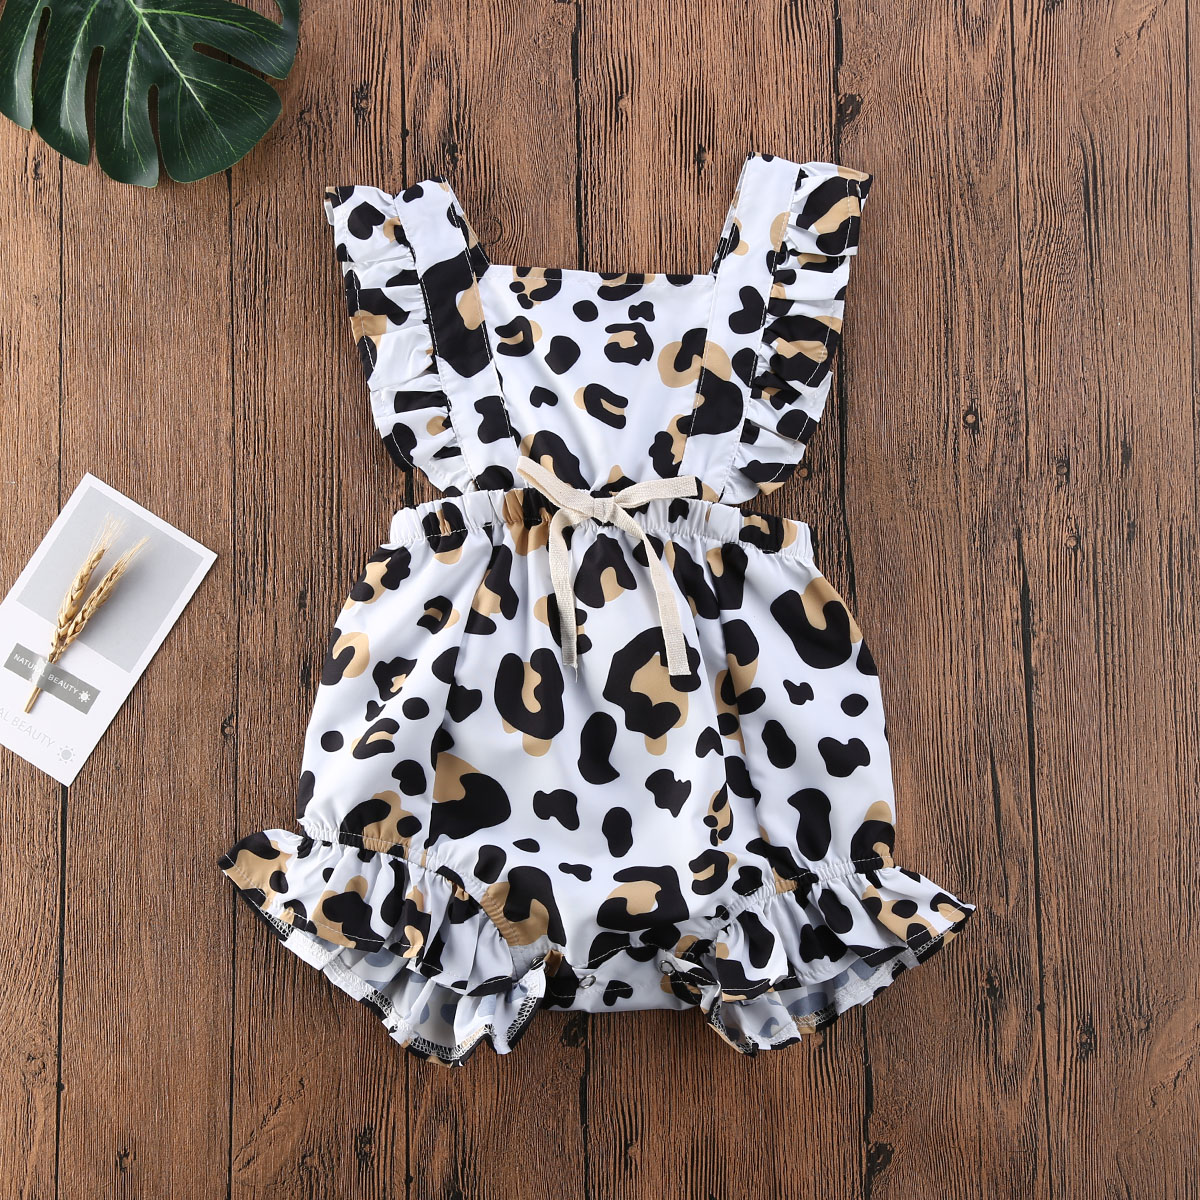 Pudcoco Newborn Baby Girl Clothes Leopard Print Sleeveless Ruffle Romper Jumpsuit One-Piece Outfit Cotton Sunsuit Clothes Summer